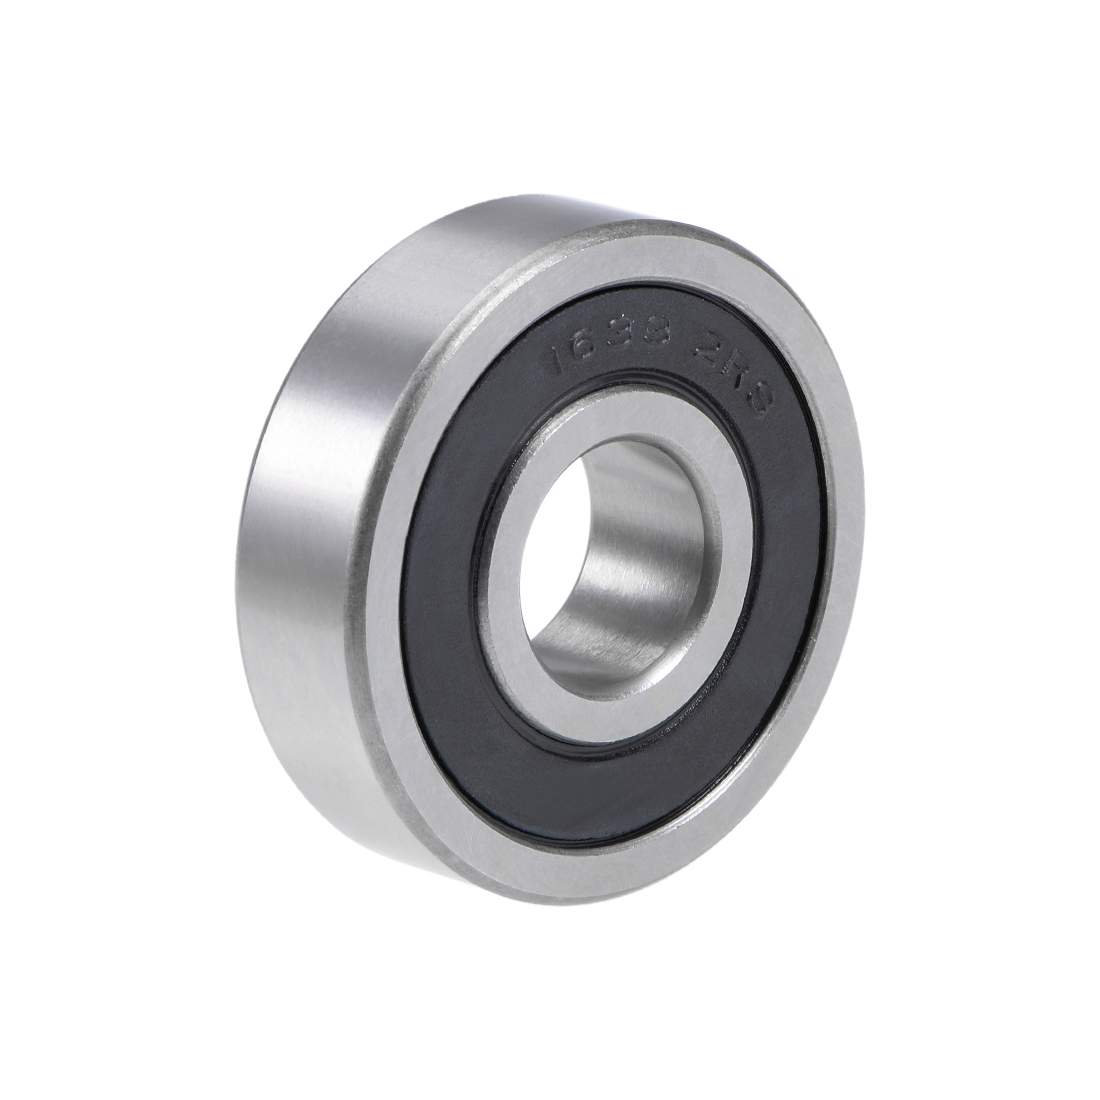 "1633-2RS Deep Groove Ball Bearing 5/8""x1-3/4""x1/2"" Double Sealed Chrome Bearings"